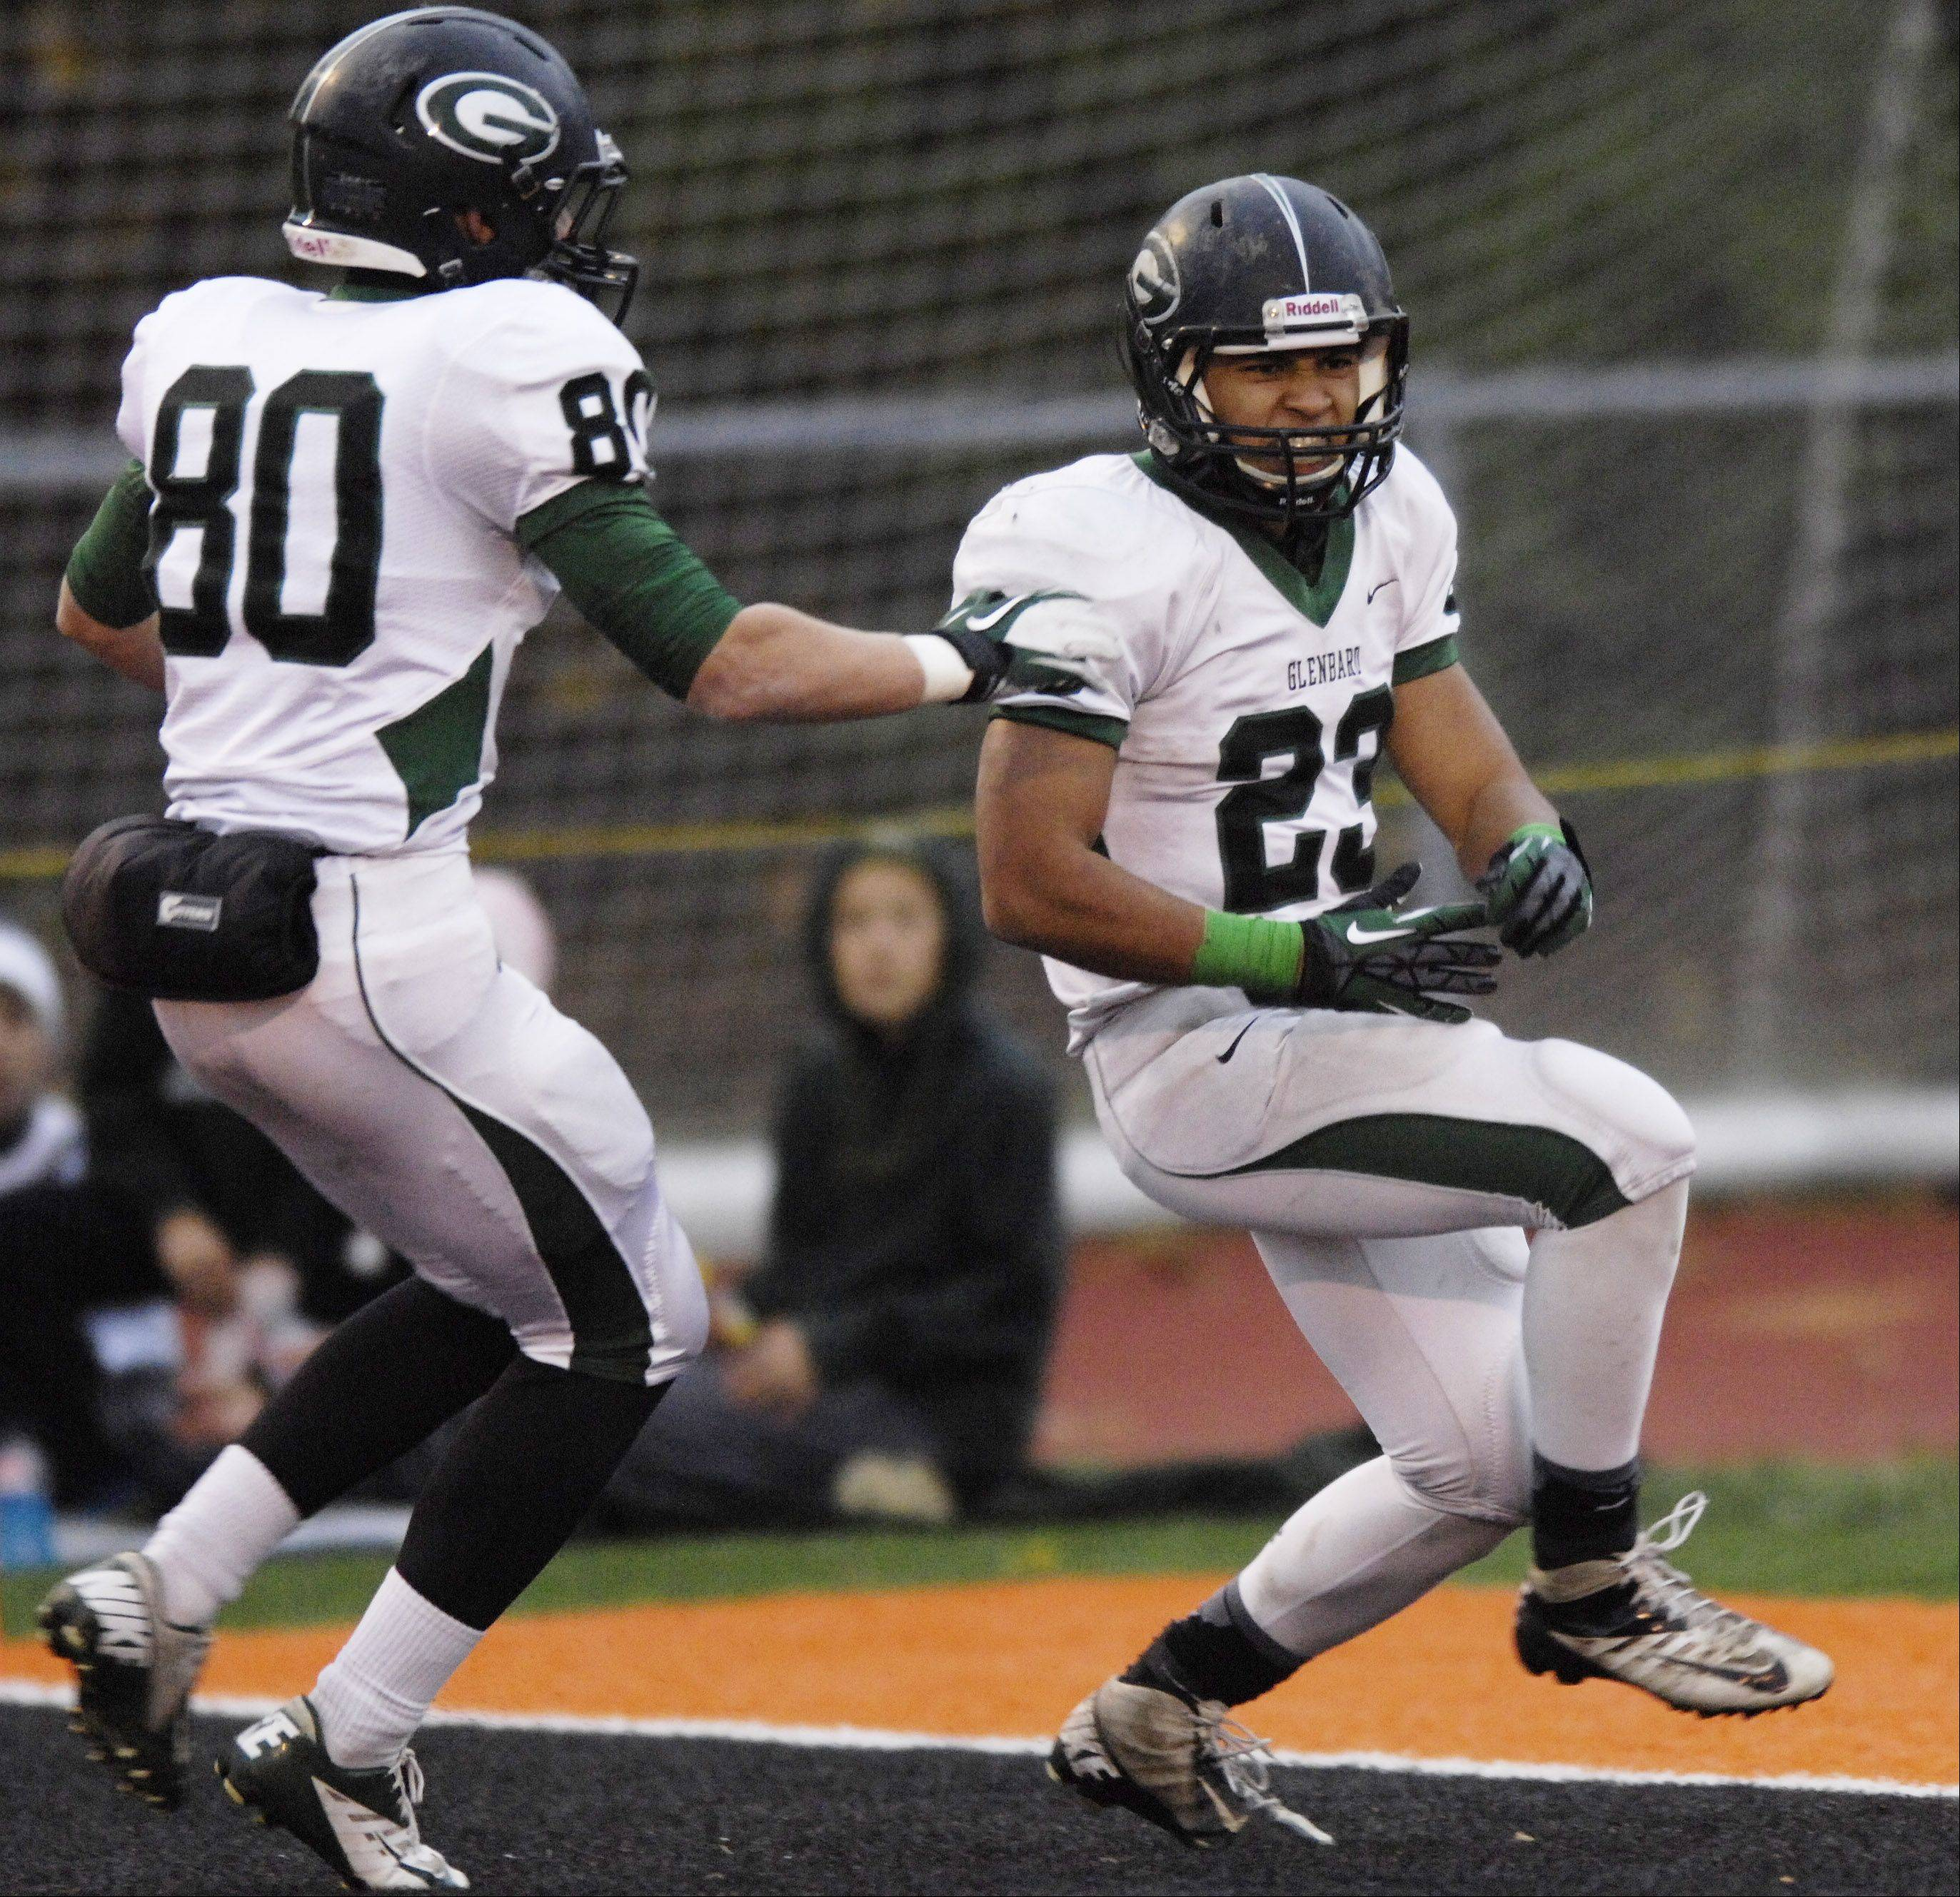 Glenbard West's Scott Andrews, right, celebrates his fourth-quarter touchdown with teammate Luke Domask Saturday against Libertyville.